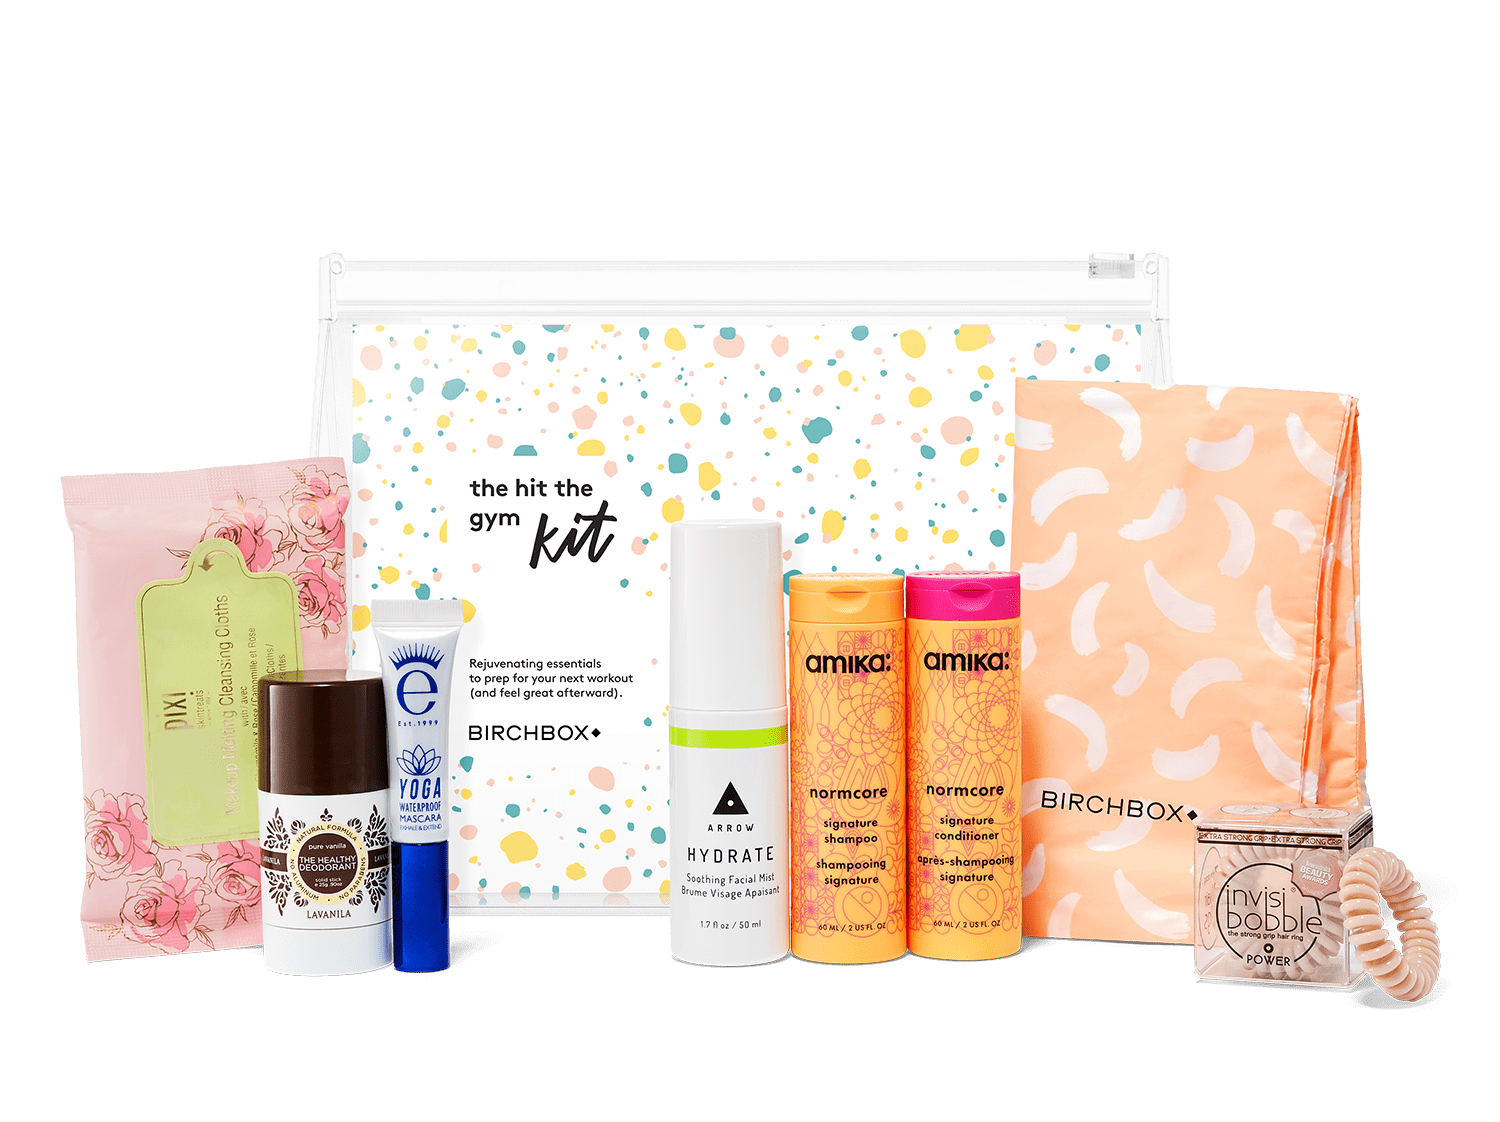 New Birchbox Kit + Free Gift Coupons – The Hit the Gym Kit!